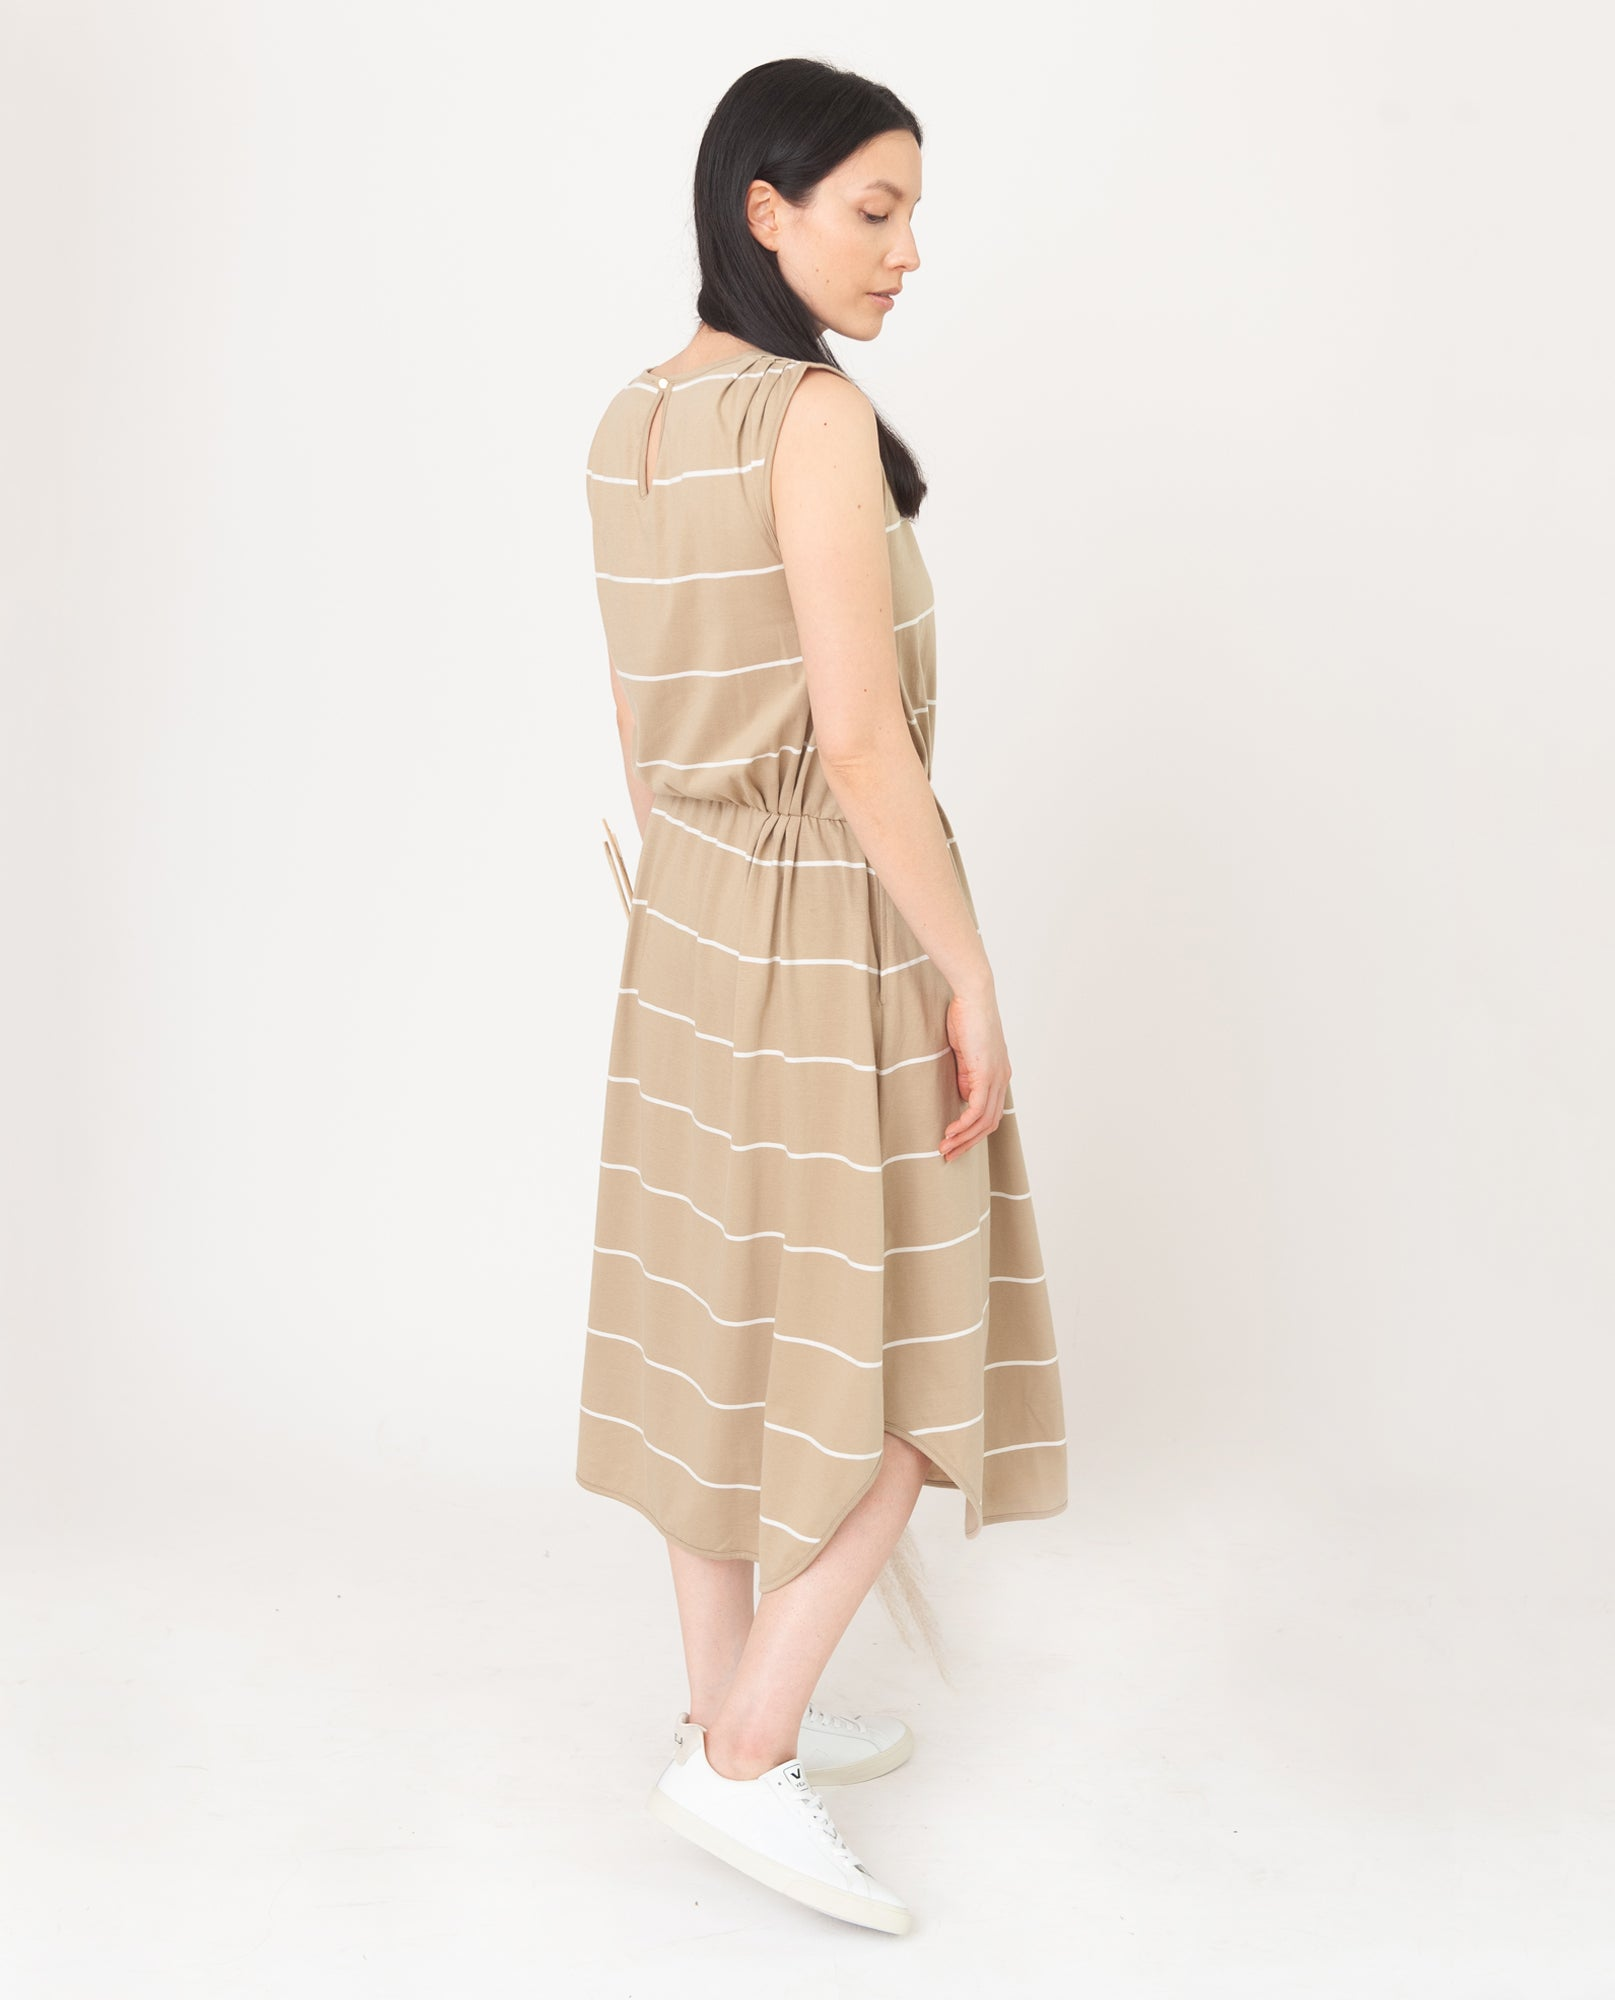 MULBERRY-SUE Organic Cotton Dress in Sand And Ecru